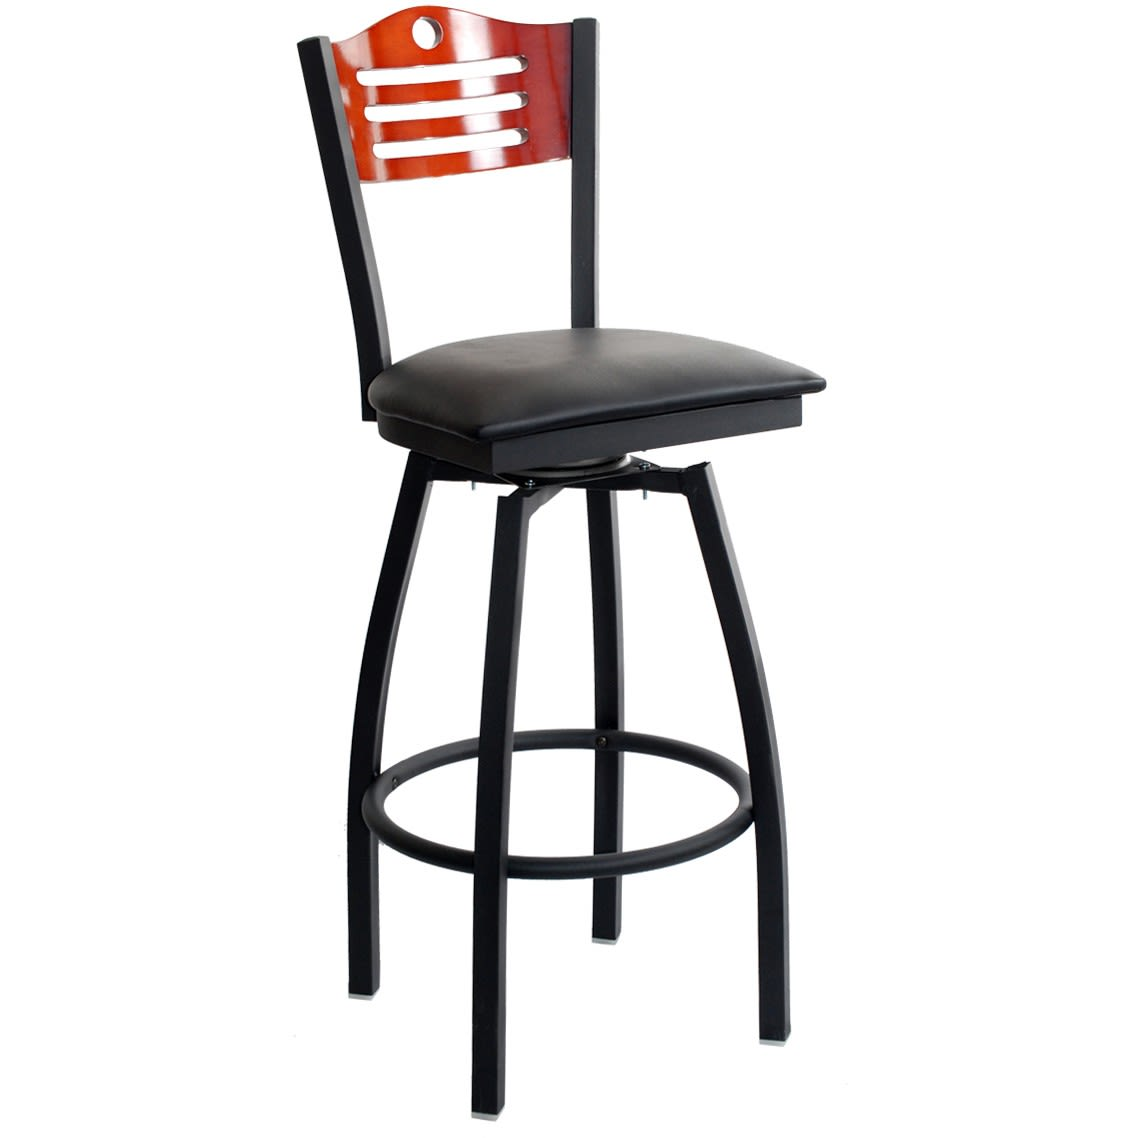 Interchangeable Back With 3 Slats and Circle Swivel Bar Stool